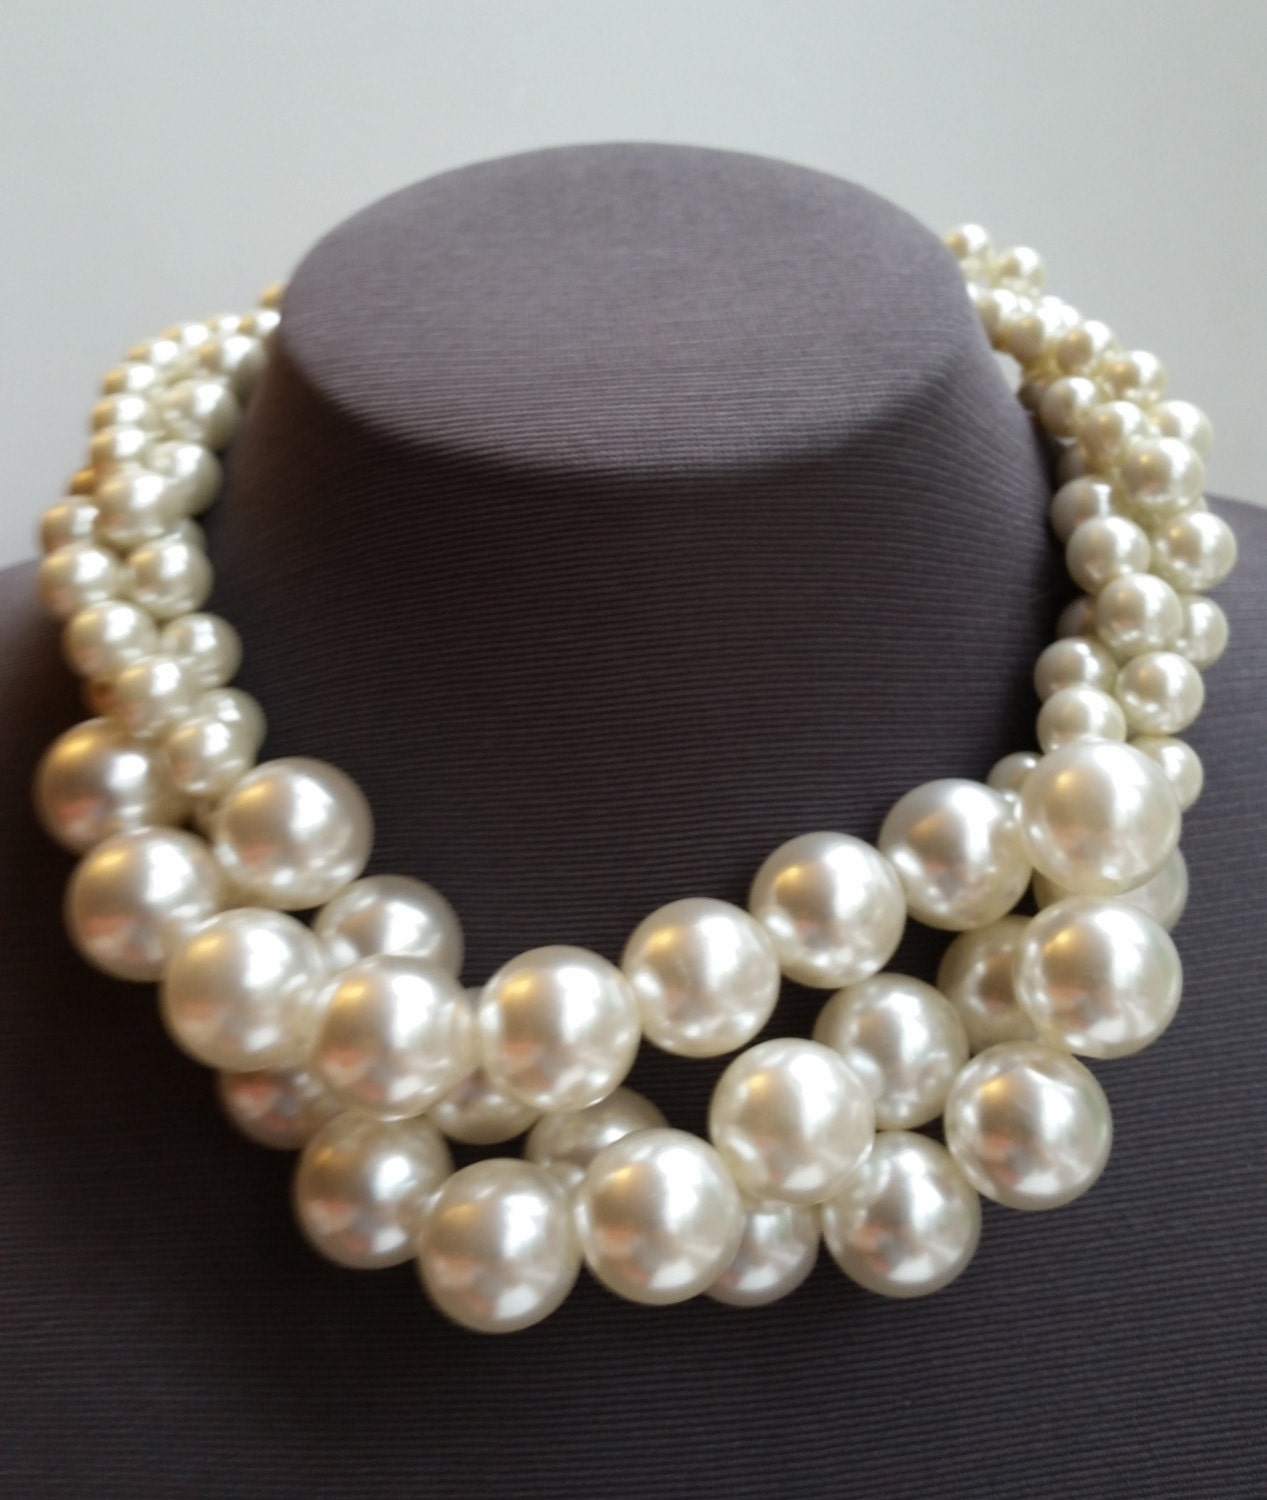 Necklace With A Pearl: Chunky Pearl Bridal Necklace Large Pearl Choker Boho Wedding